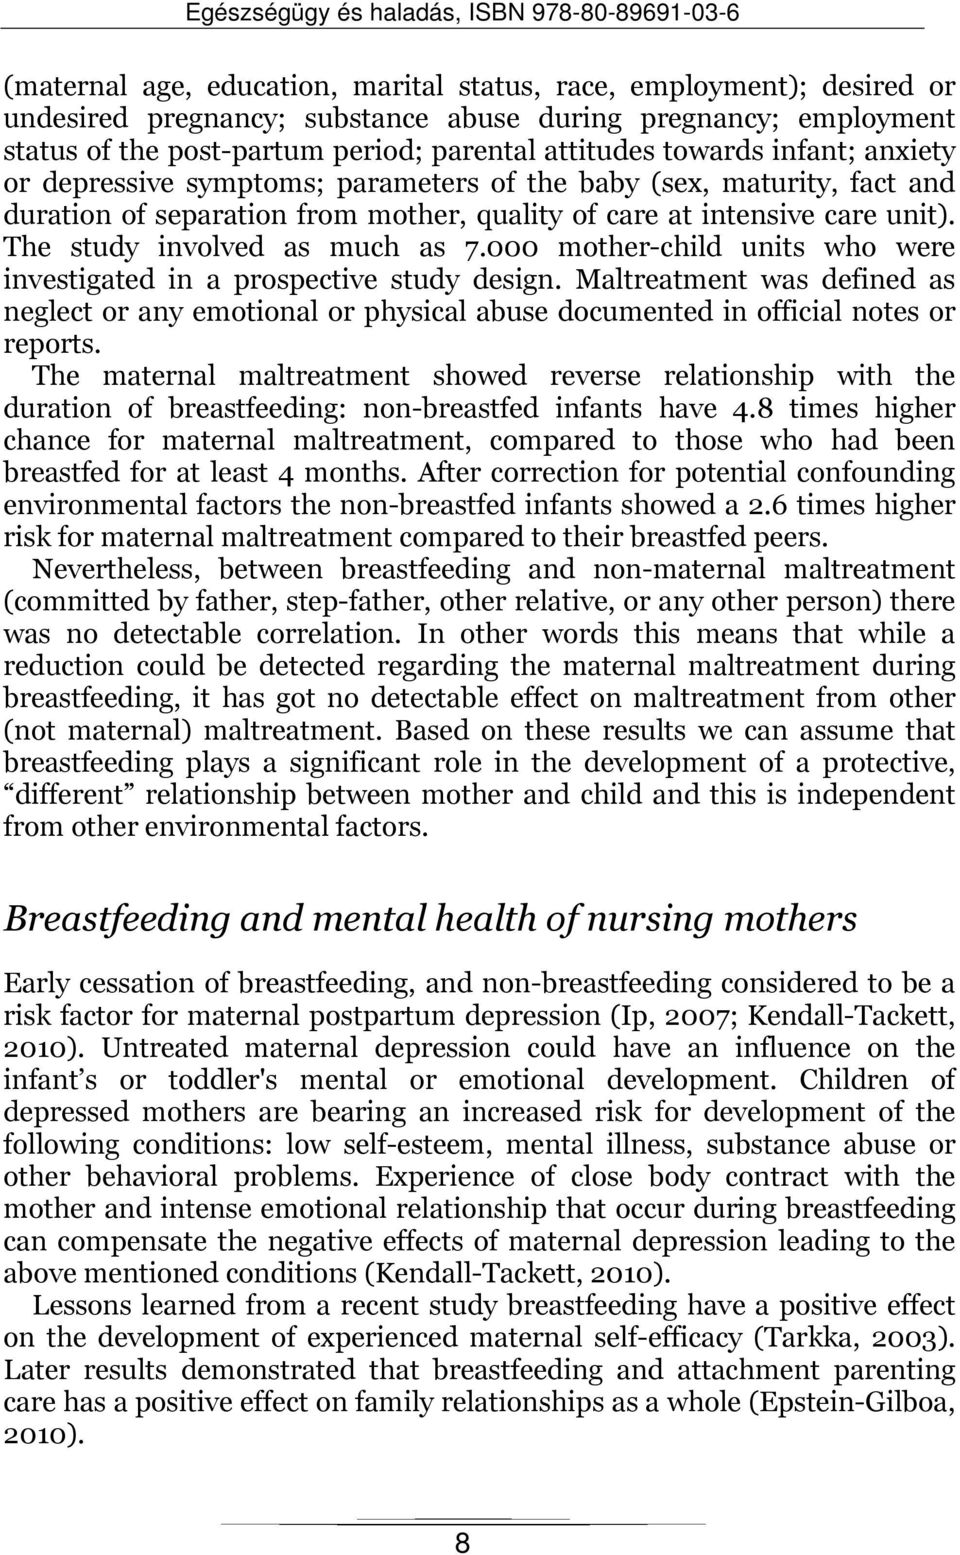 000 mother-child units who were investigated in a prospective study design. Maltreatment was defined as neglect or any emotional or physical abuse documented in official notes or reports.